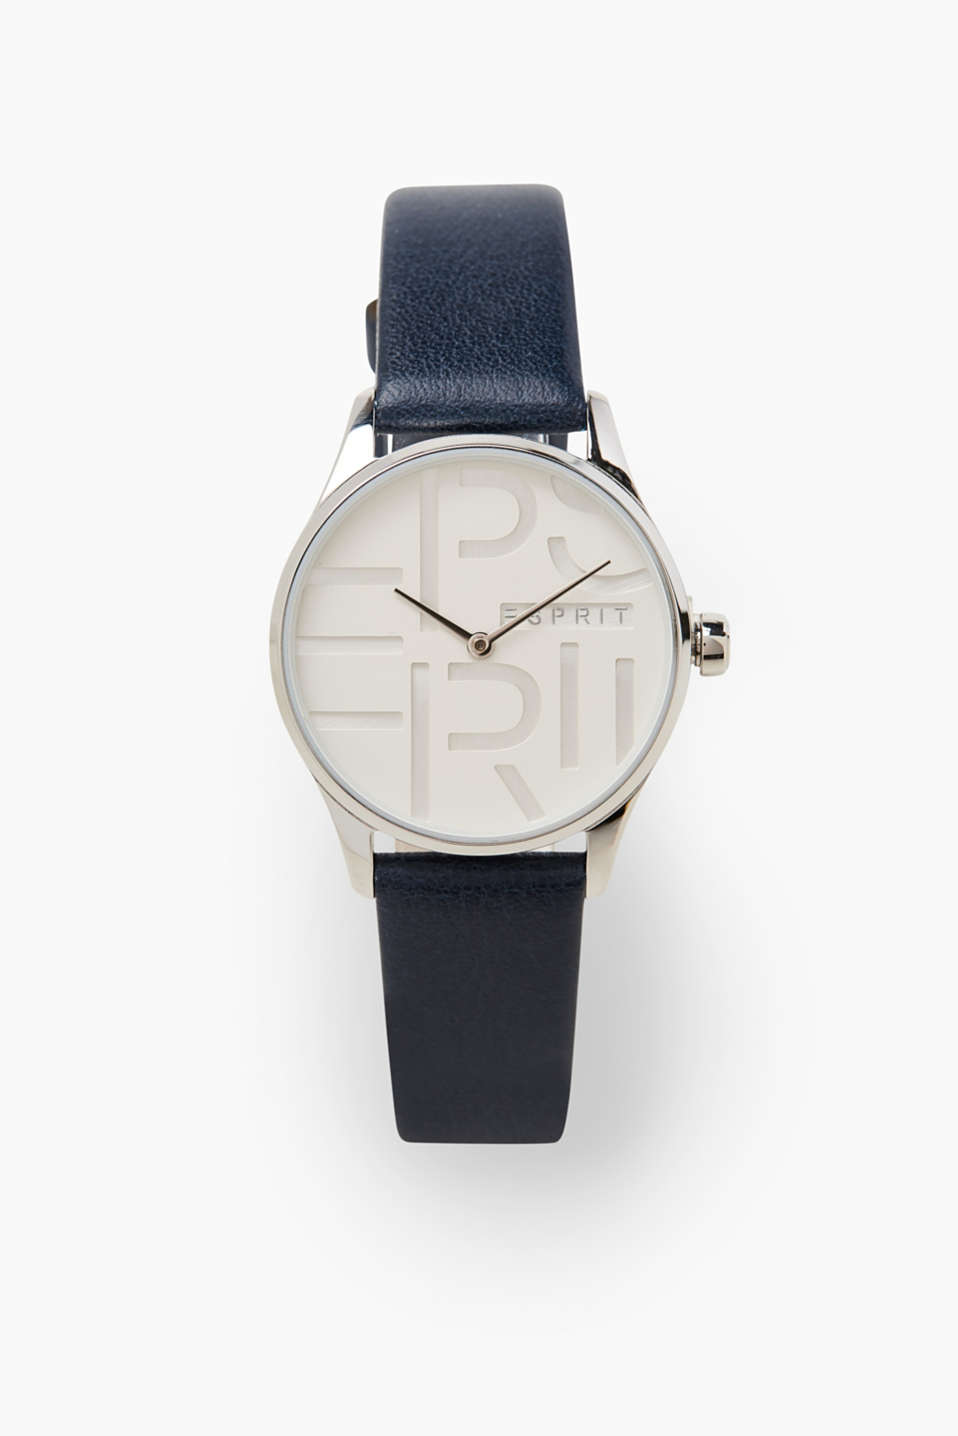 Minimalist and with fine details! The three-dimensional dial with a logo is one of these fine details.